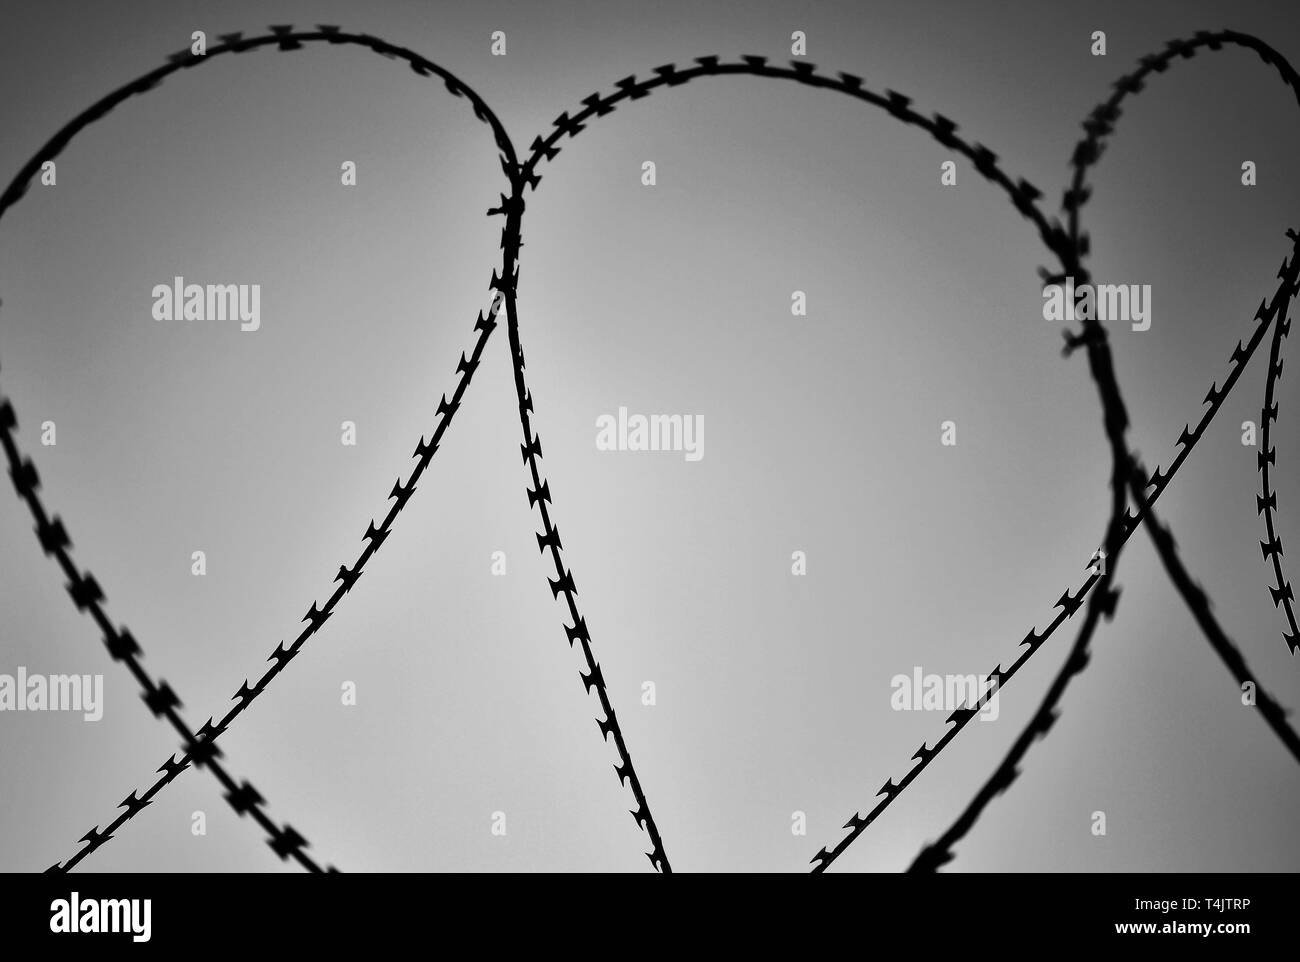 Part of the barbed wire fence close-up. The concept of restriction of freedom of movement. Black and white. - Stock Image